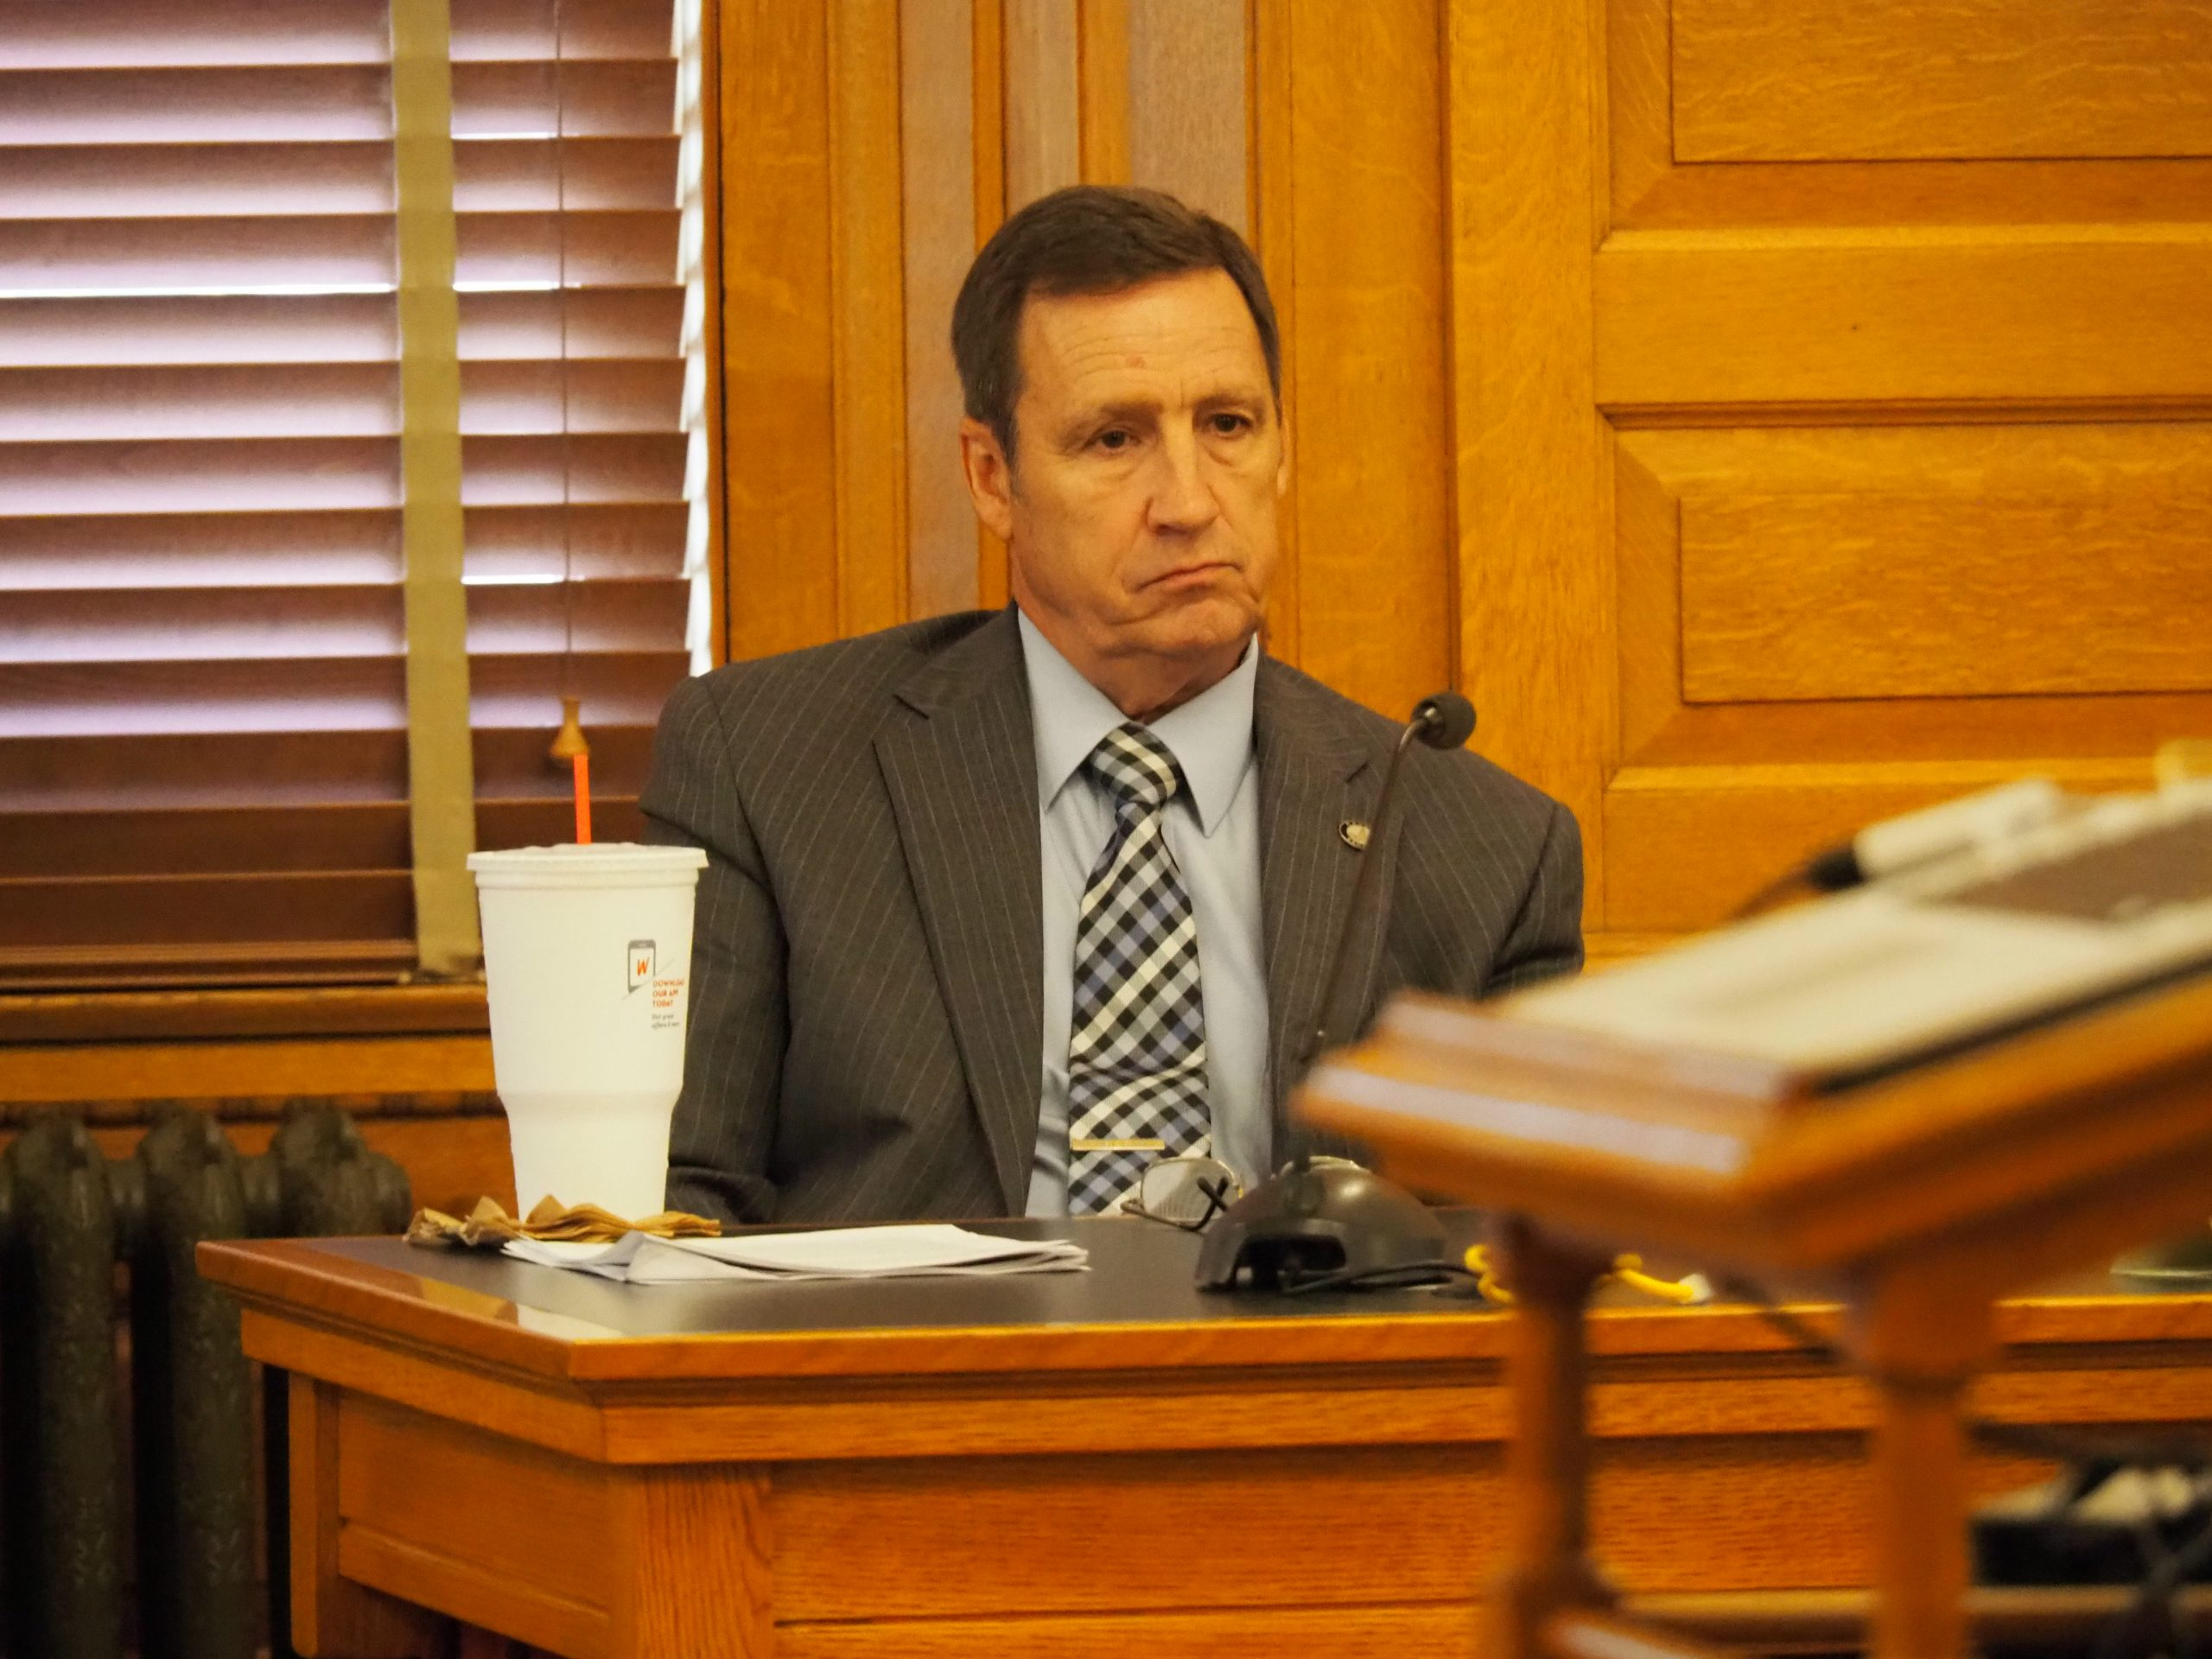 Sen. Dennis Pyle, a Hiawatha Republican, says he's disappointed state emergency management officials confirmed Tuesday the purchase of hospital gowns that turned out to be trash bags with arm holes cut in the corner. (Sherman Smith/Kansas Reflector)